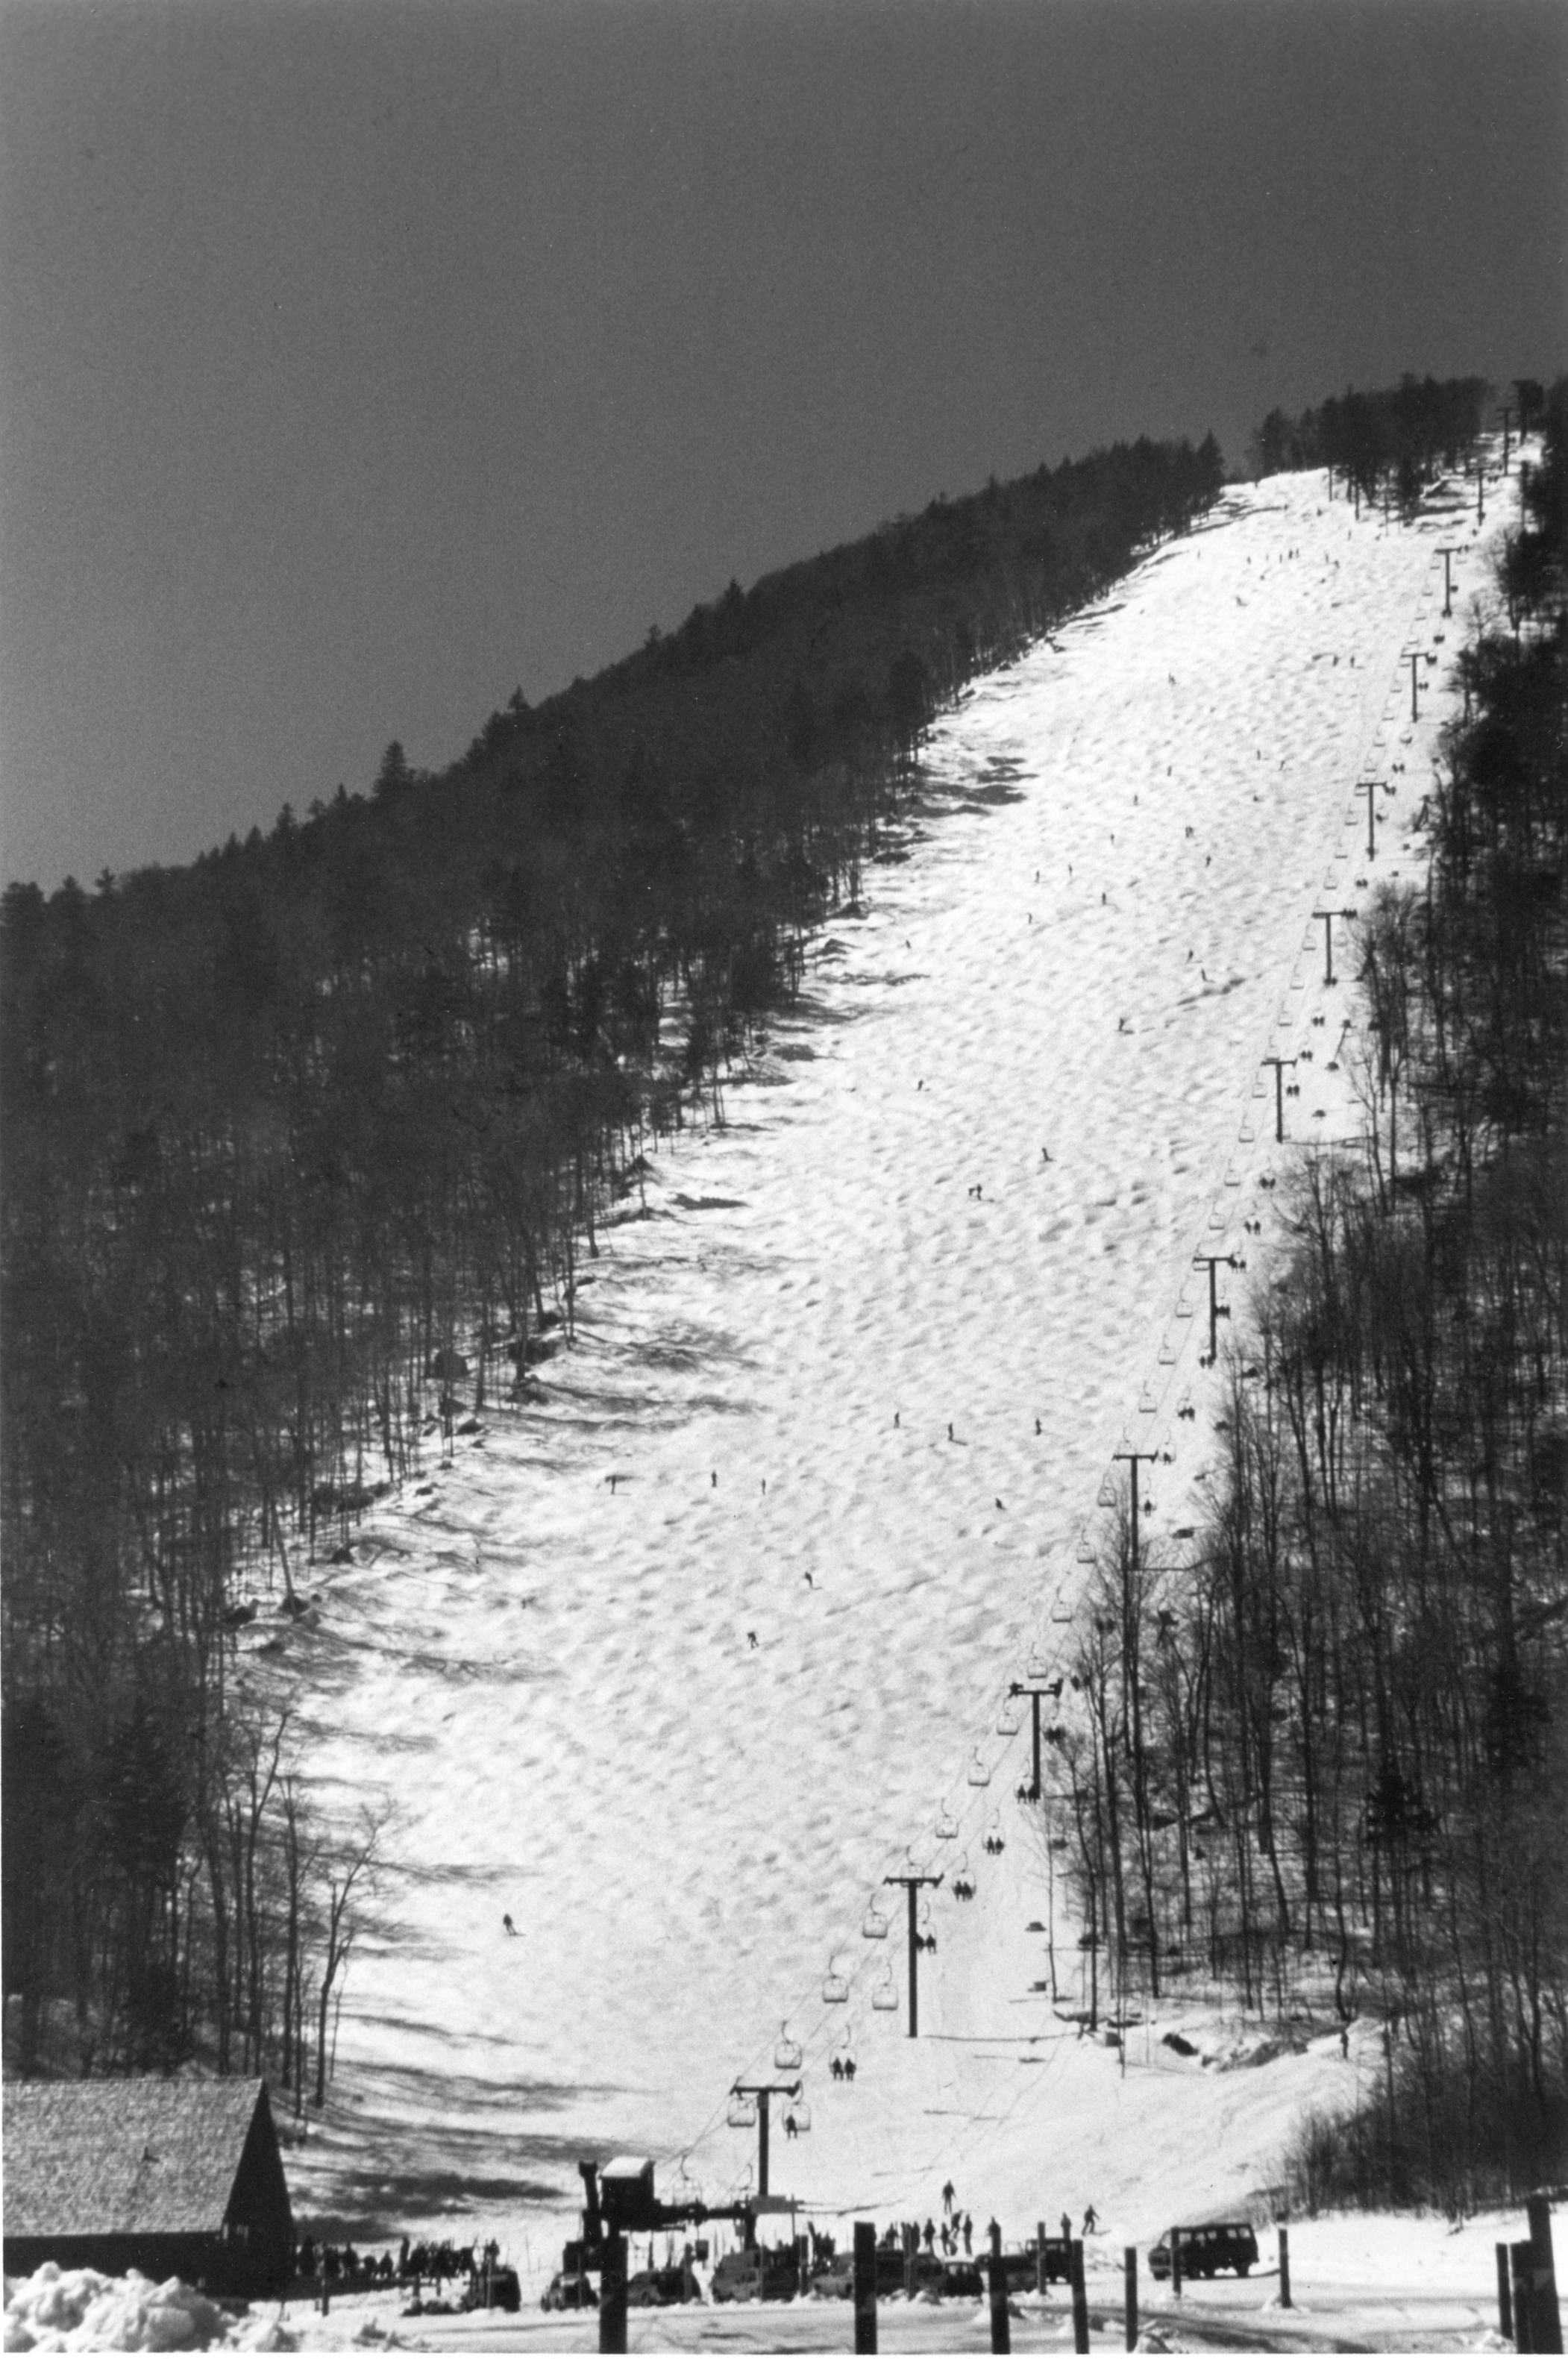 BearMtn_Killington.jpg